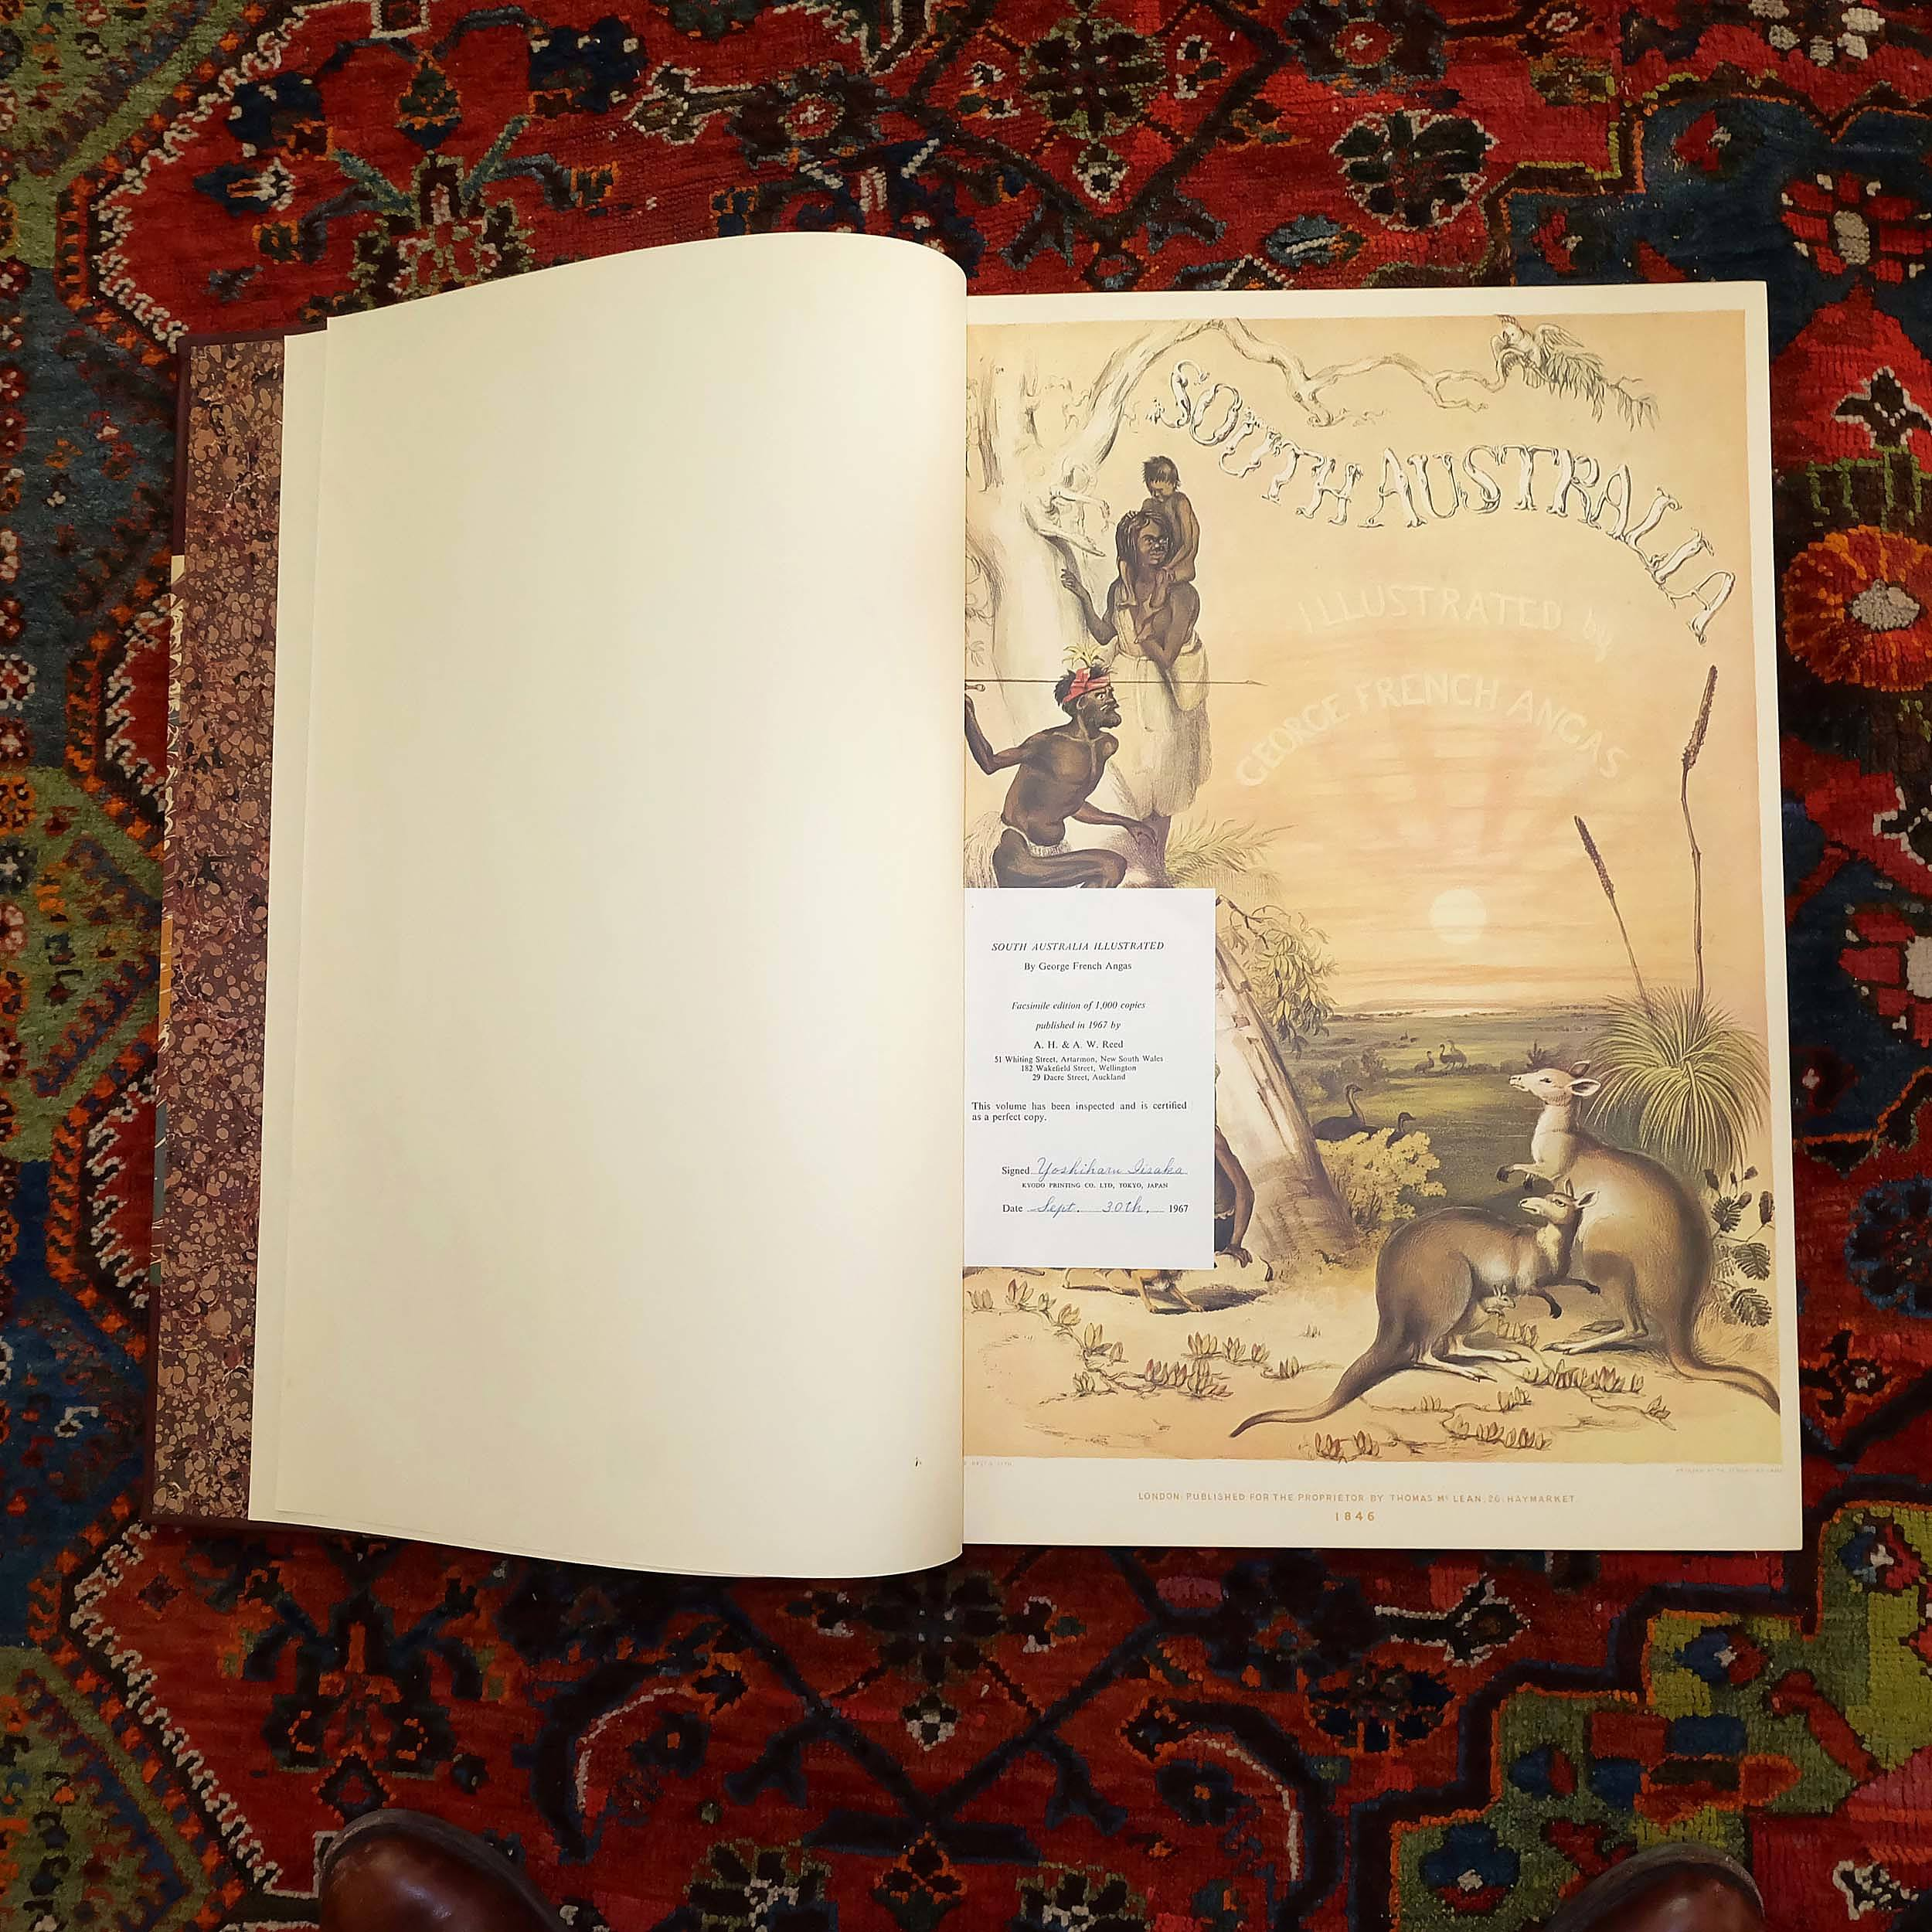 'A Limited Facsimile Edition of South Australia Illustrated by George French Angas'